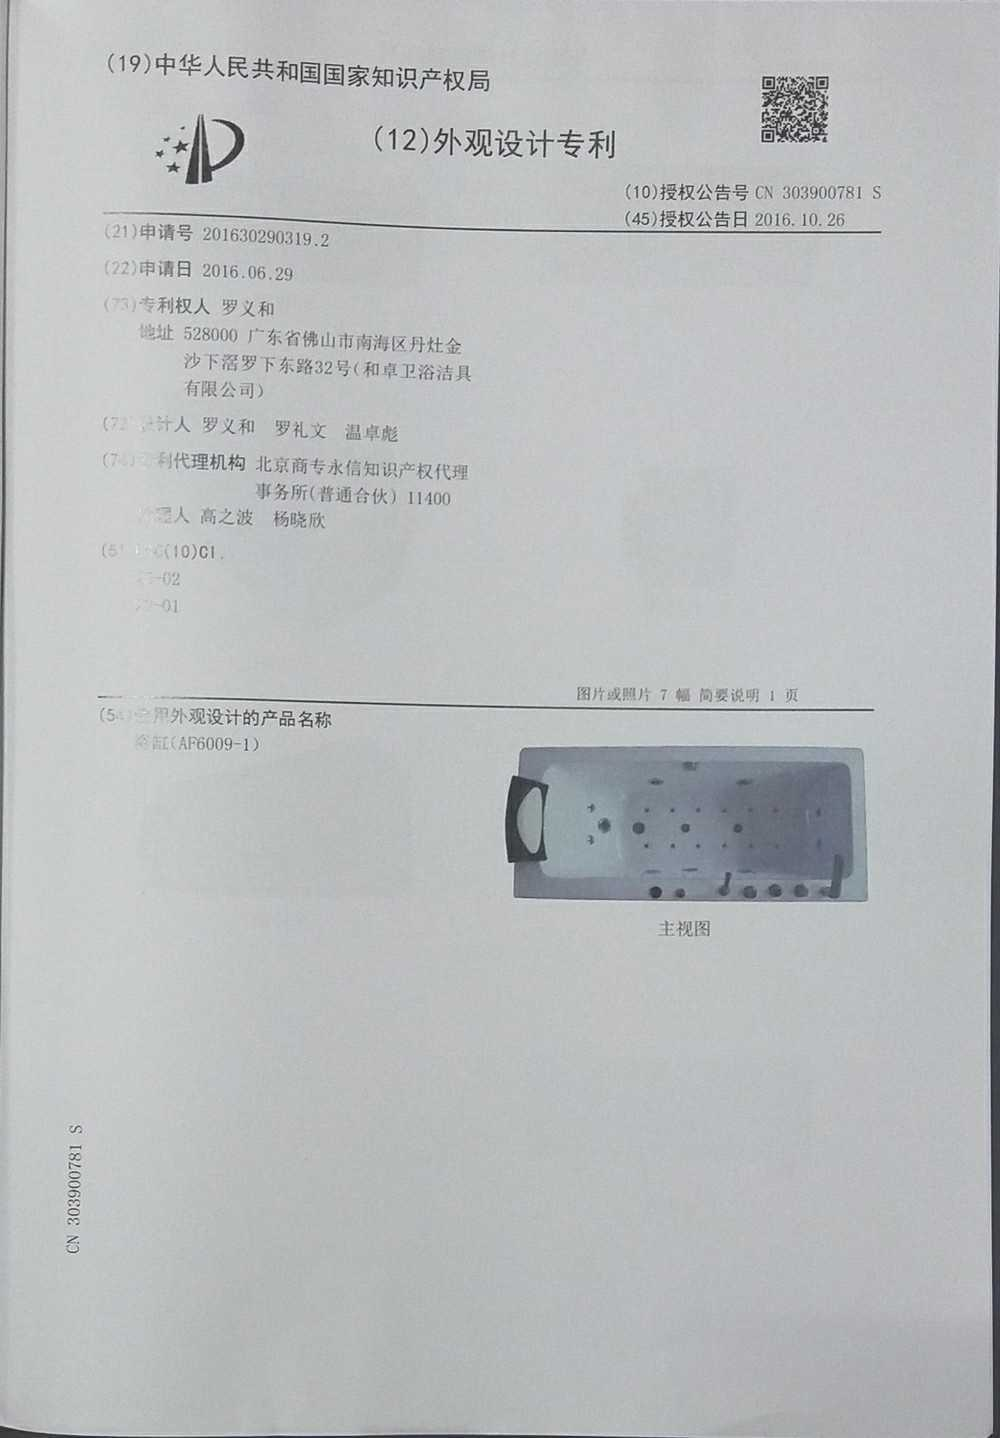 Patent 1 for sector massage bathtub